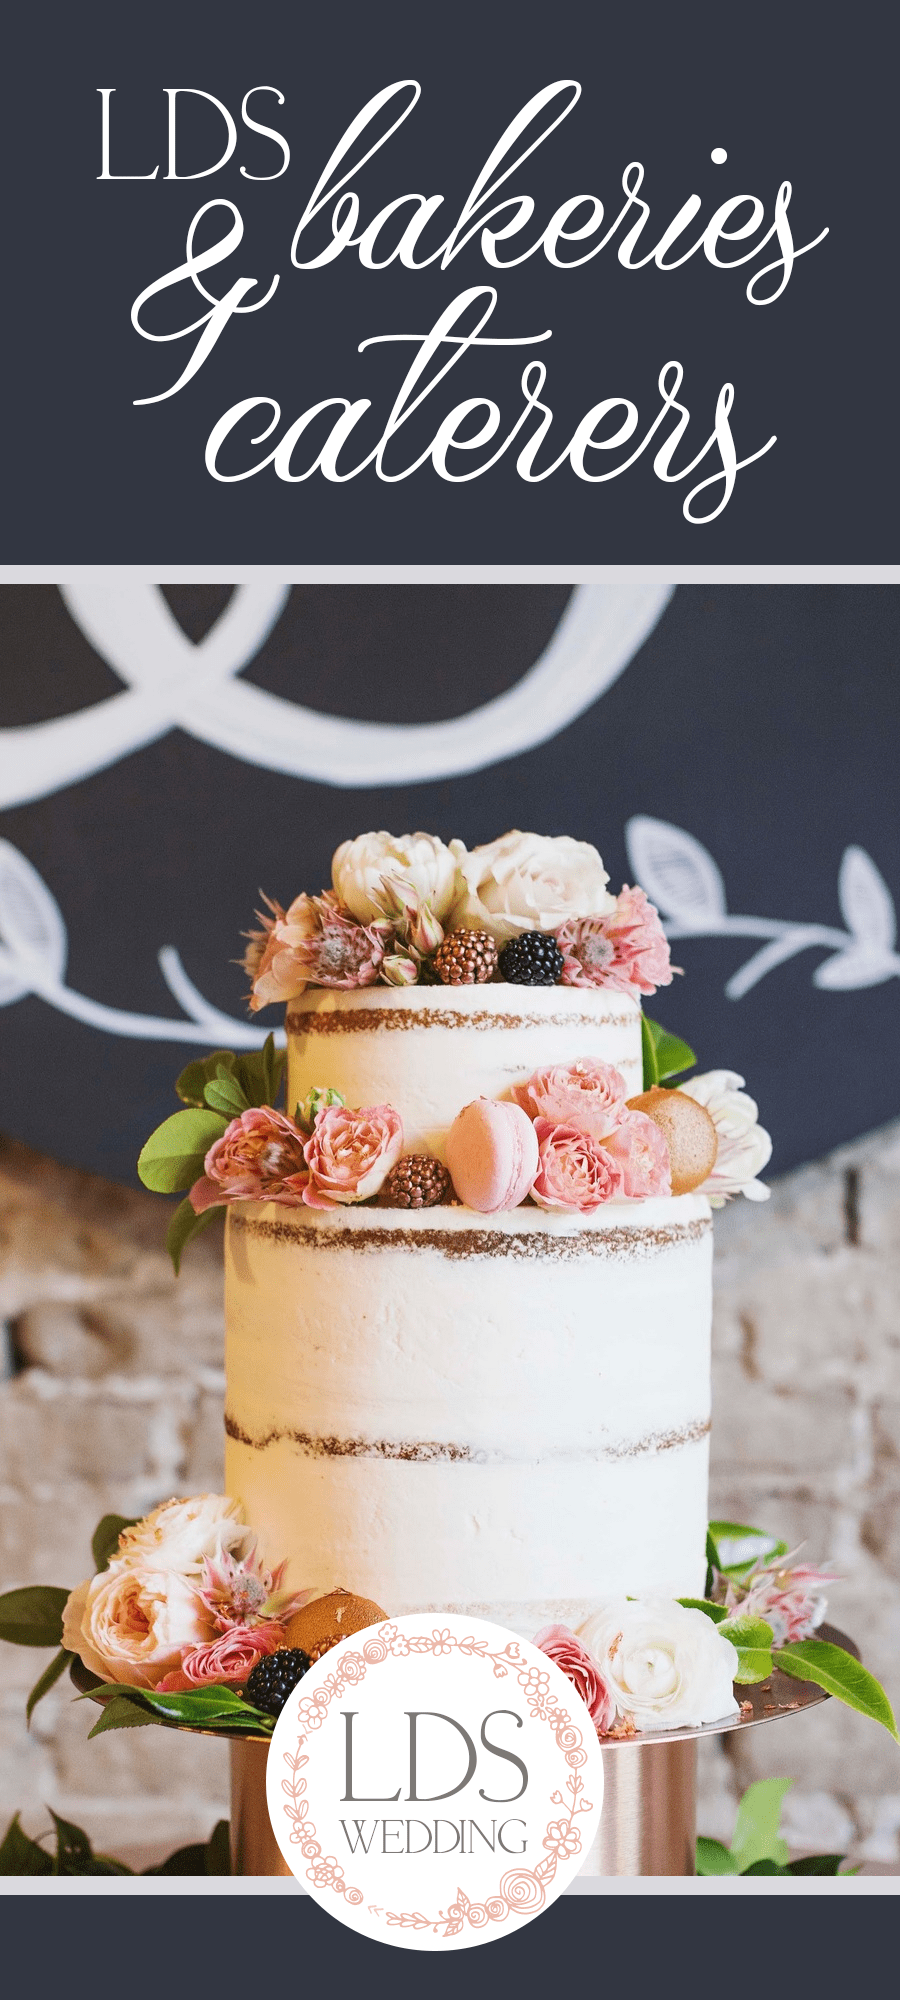 LDS Wedding Cakes, Bakeries & Caterers